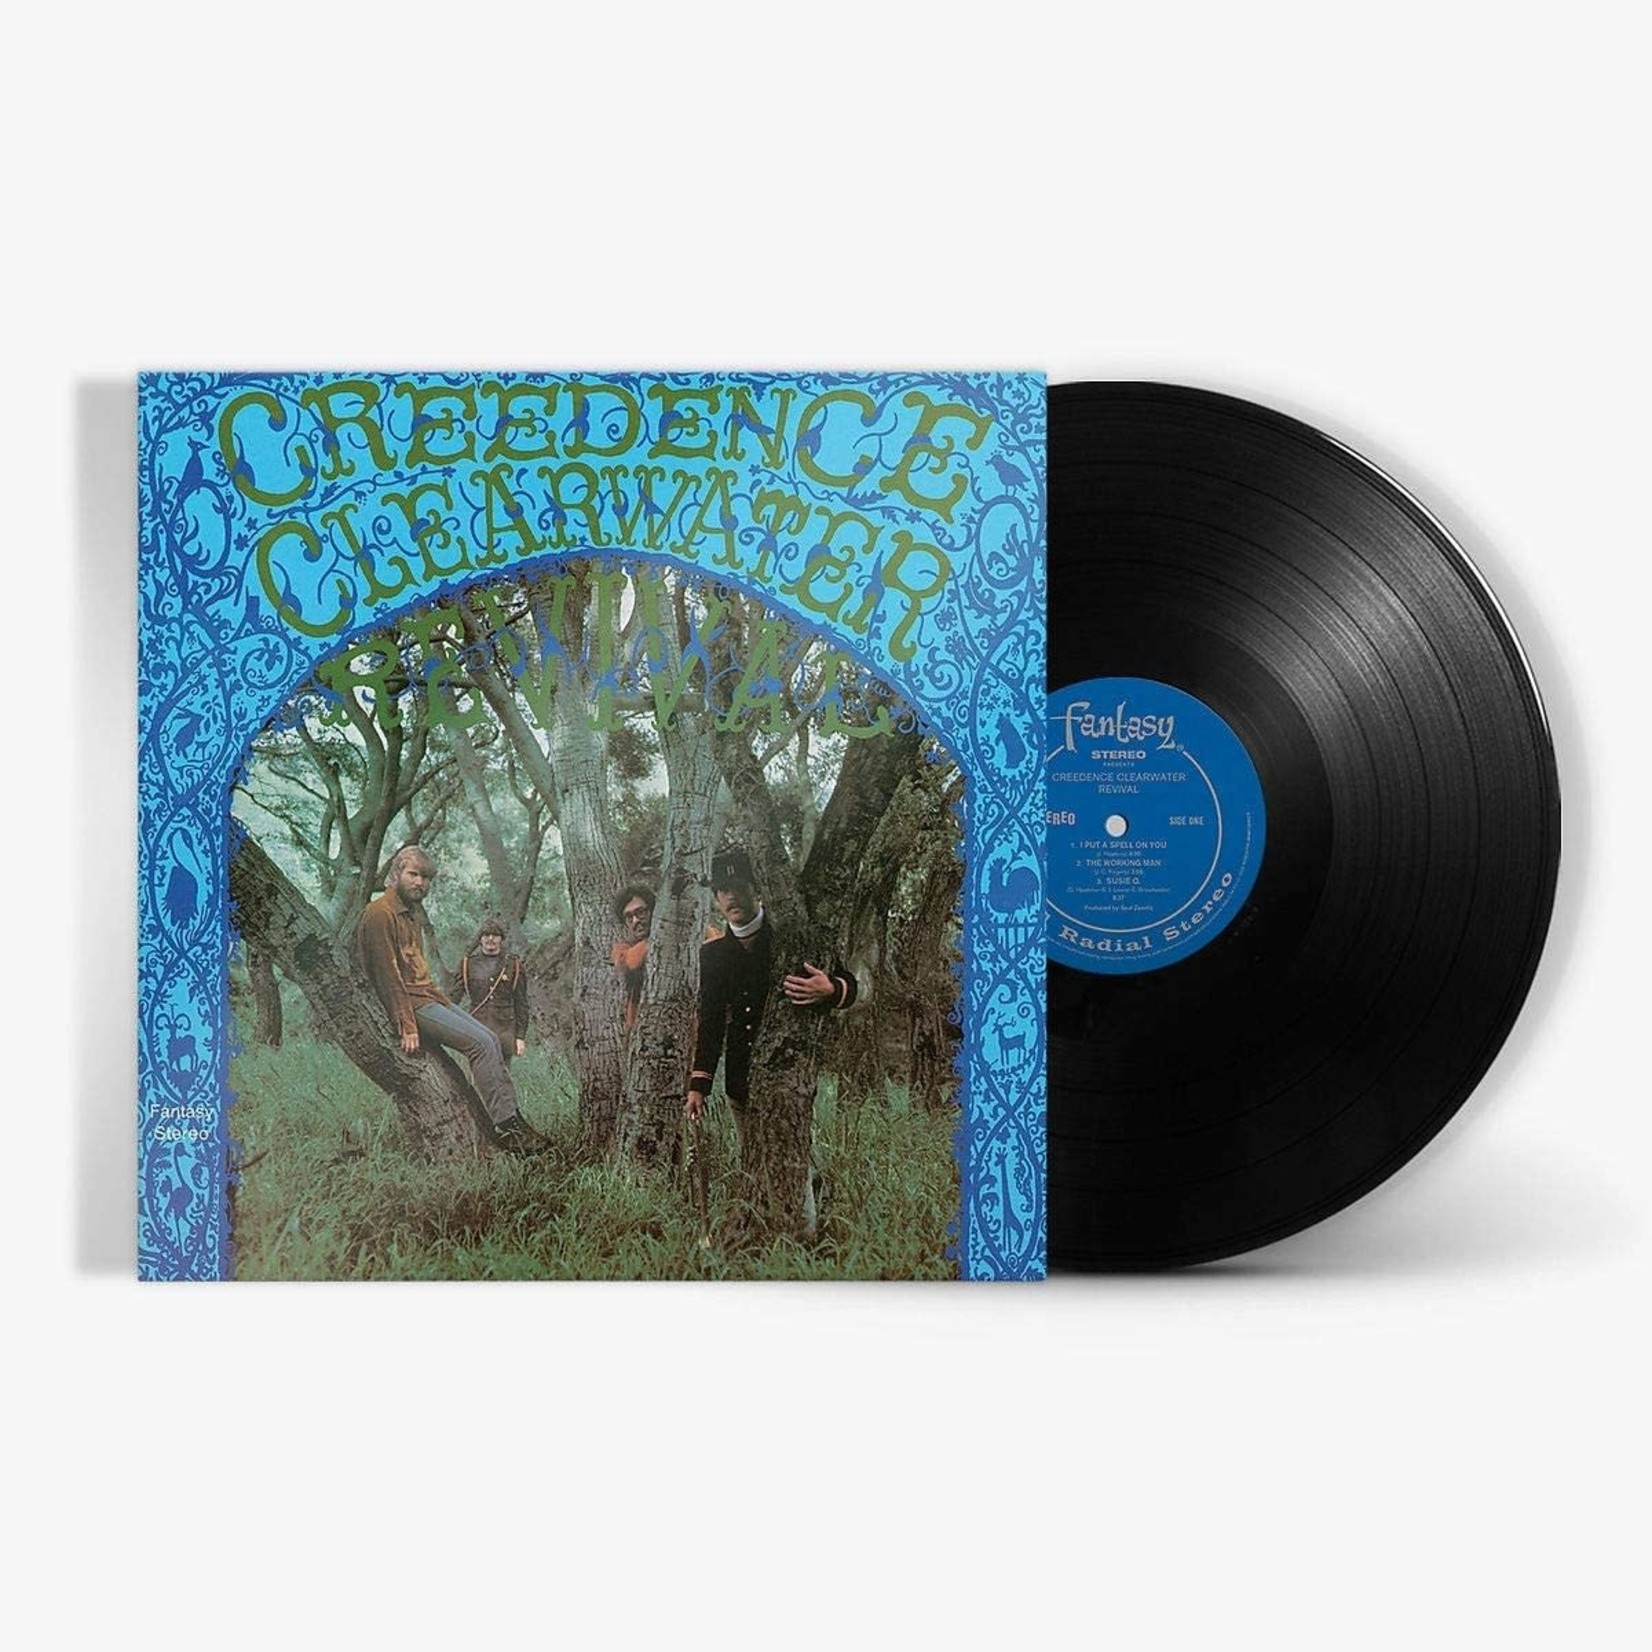 CREEDENCE CLEARWATER REVIVAL CREEDENCE CLEARWATER REVIVIAL (180G HALF SPEED LP)